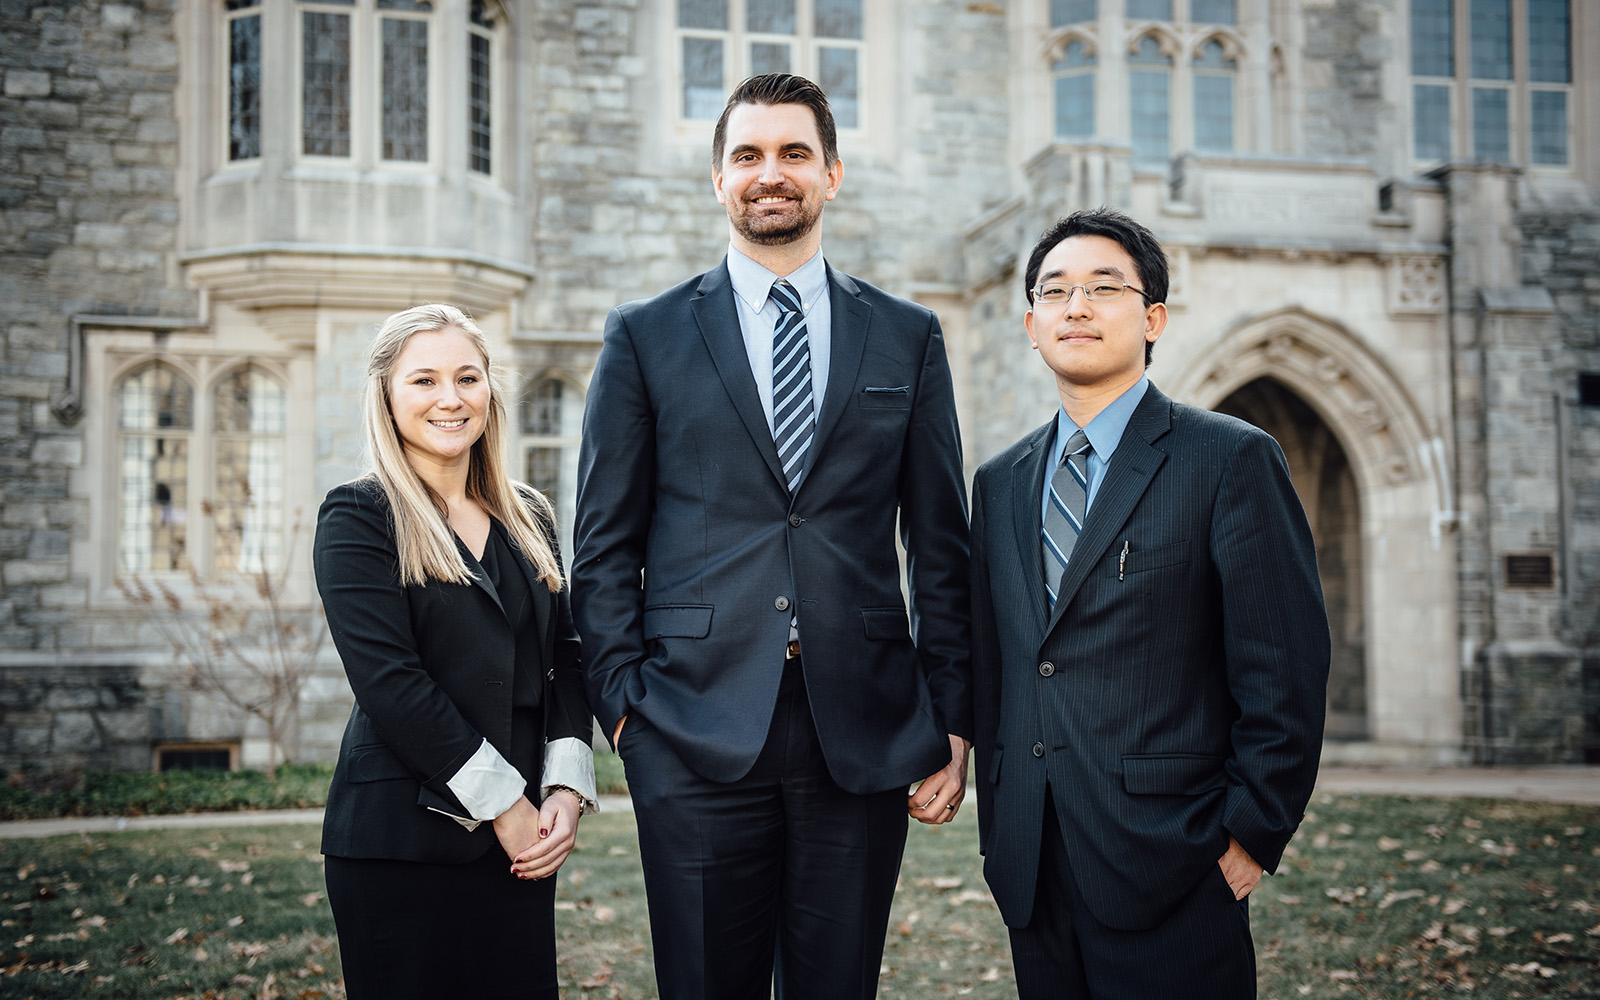 The winning team of the 4th Annual Business/Law Negotiation Competition. From left: Brooke Tinnerello '17, UConn law student, Christopher DiGiacomo '18 MBA, and Steven Lin, UConn law student. (Nathan Oldham/UConn School of Business)